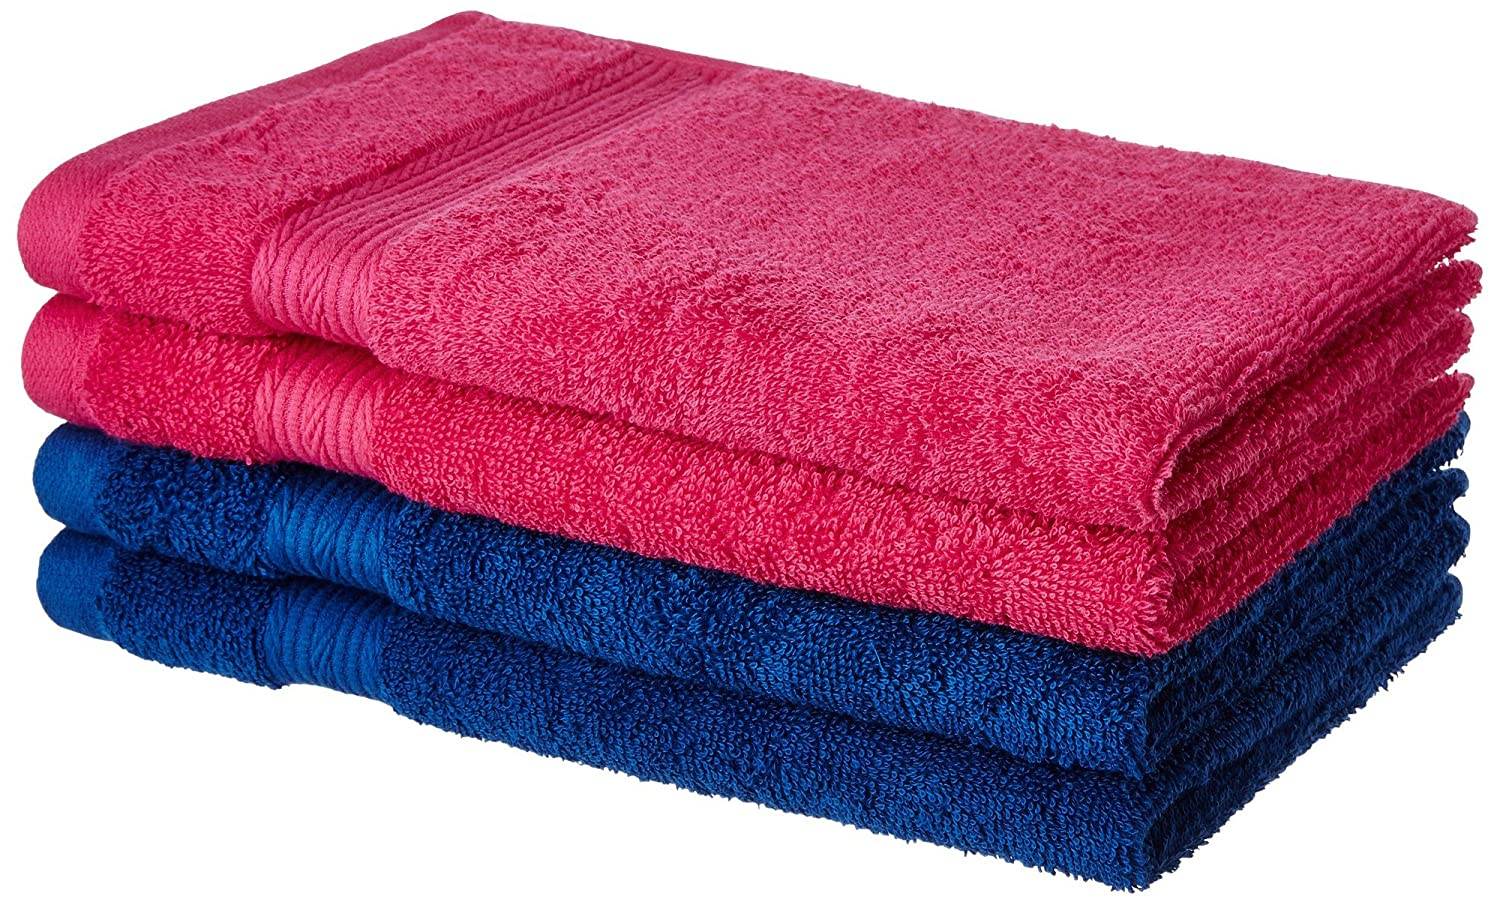 Solimo 100% Cotton bath towel number one in  best towel brand in India.